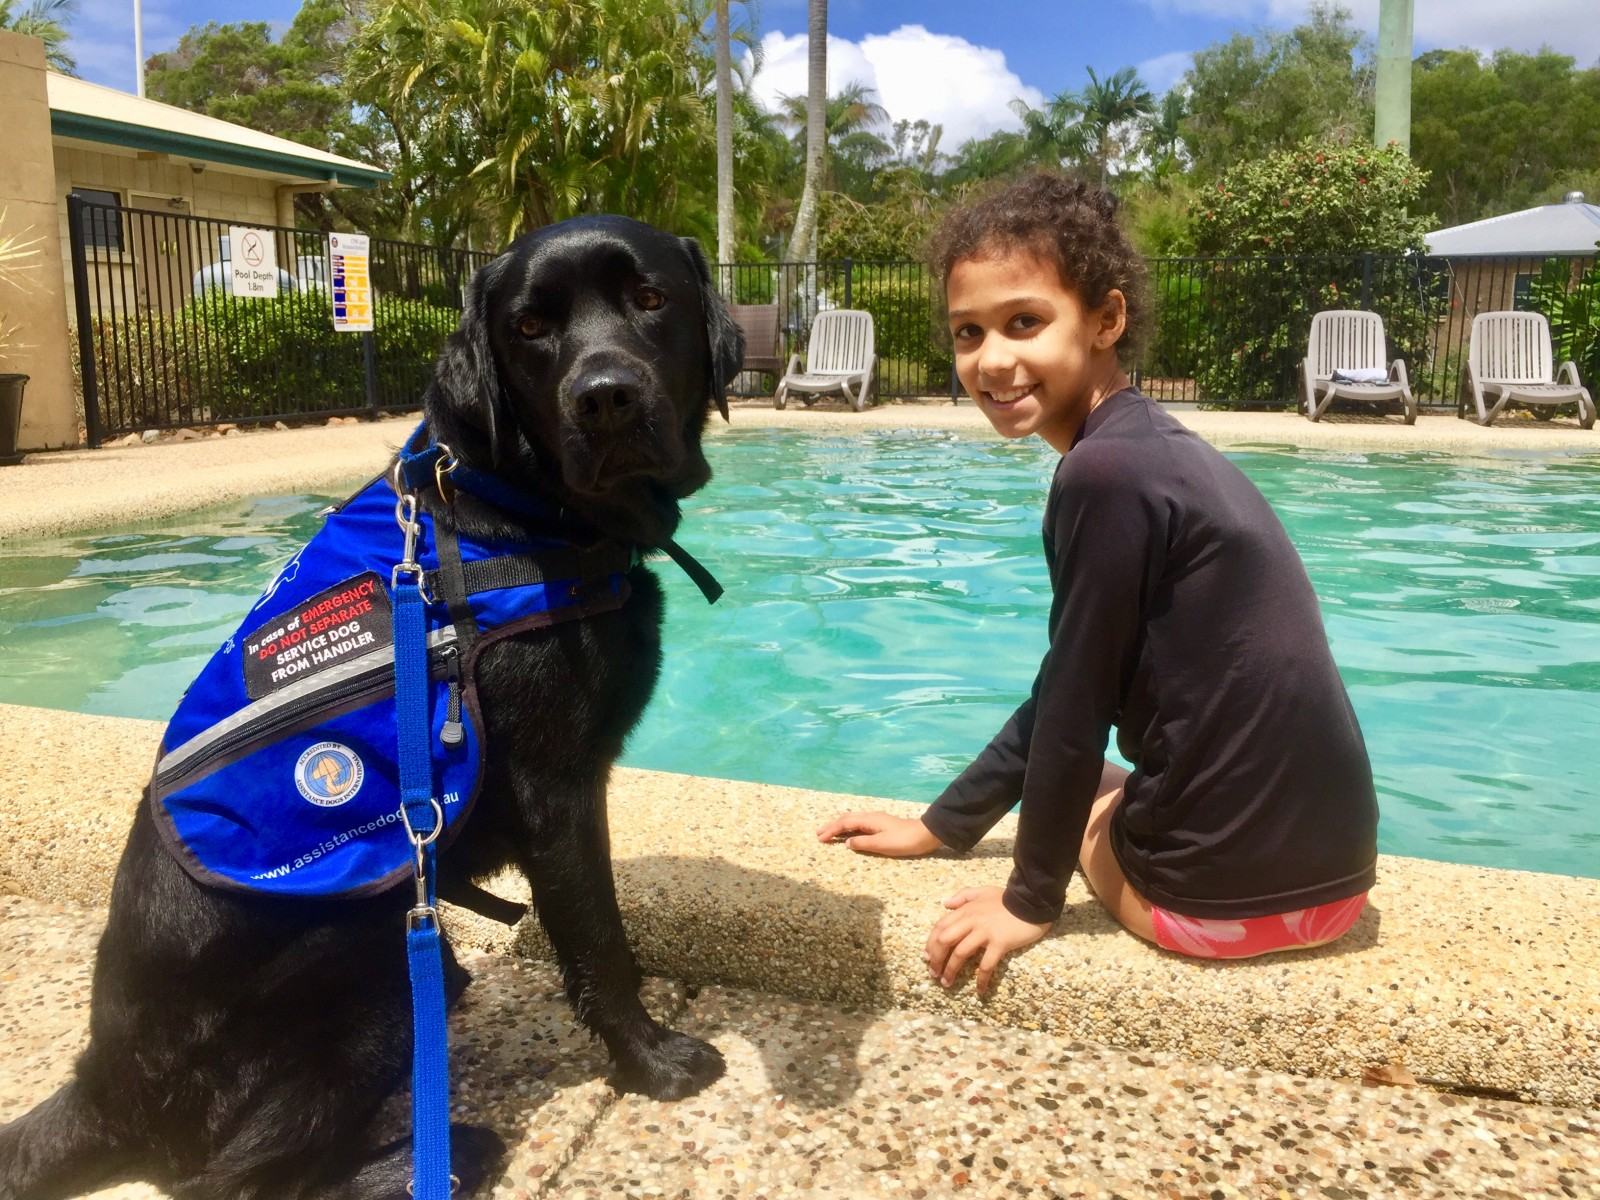 Autism Service Dog a life changer for 10 year old girl